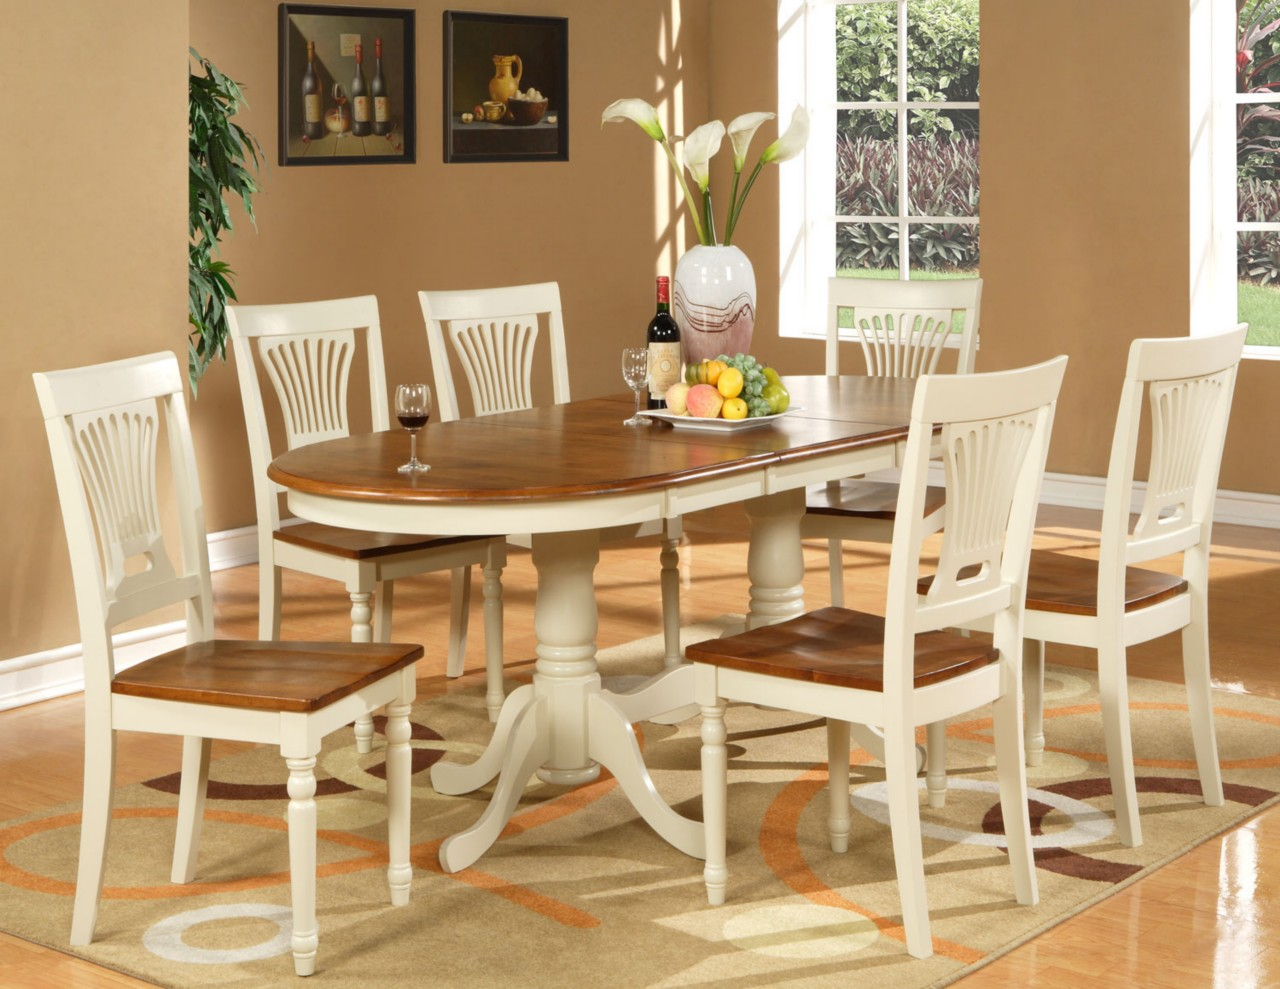 7pc oval dining room set table 6 chairs extension leaf ebay for Kitchen dinette sets